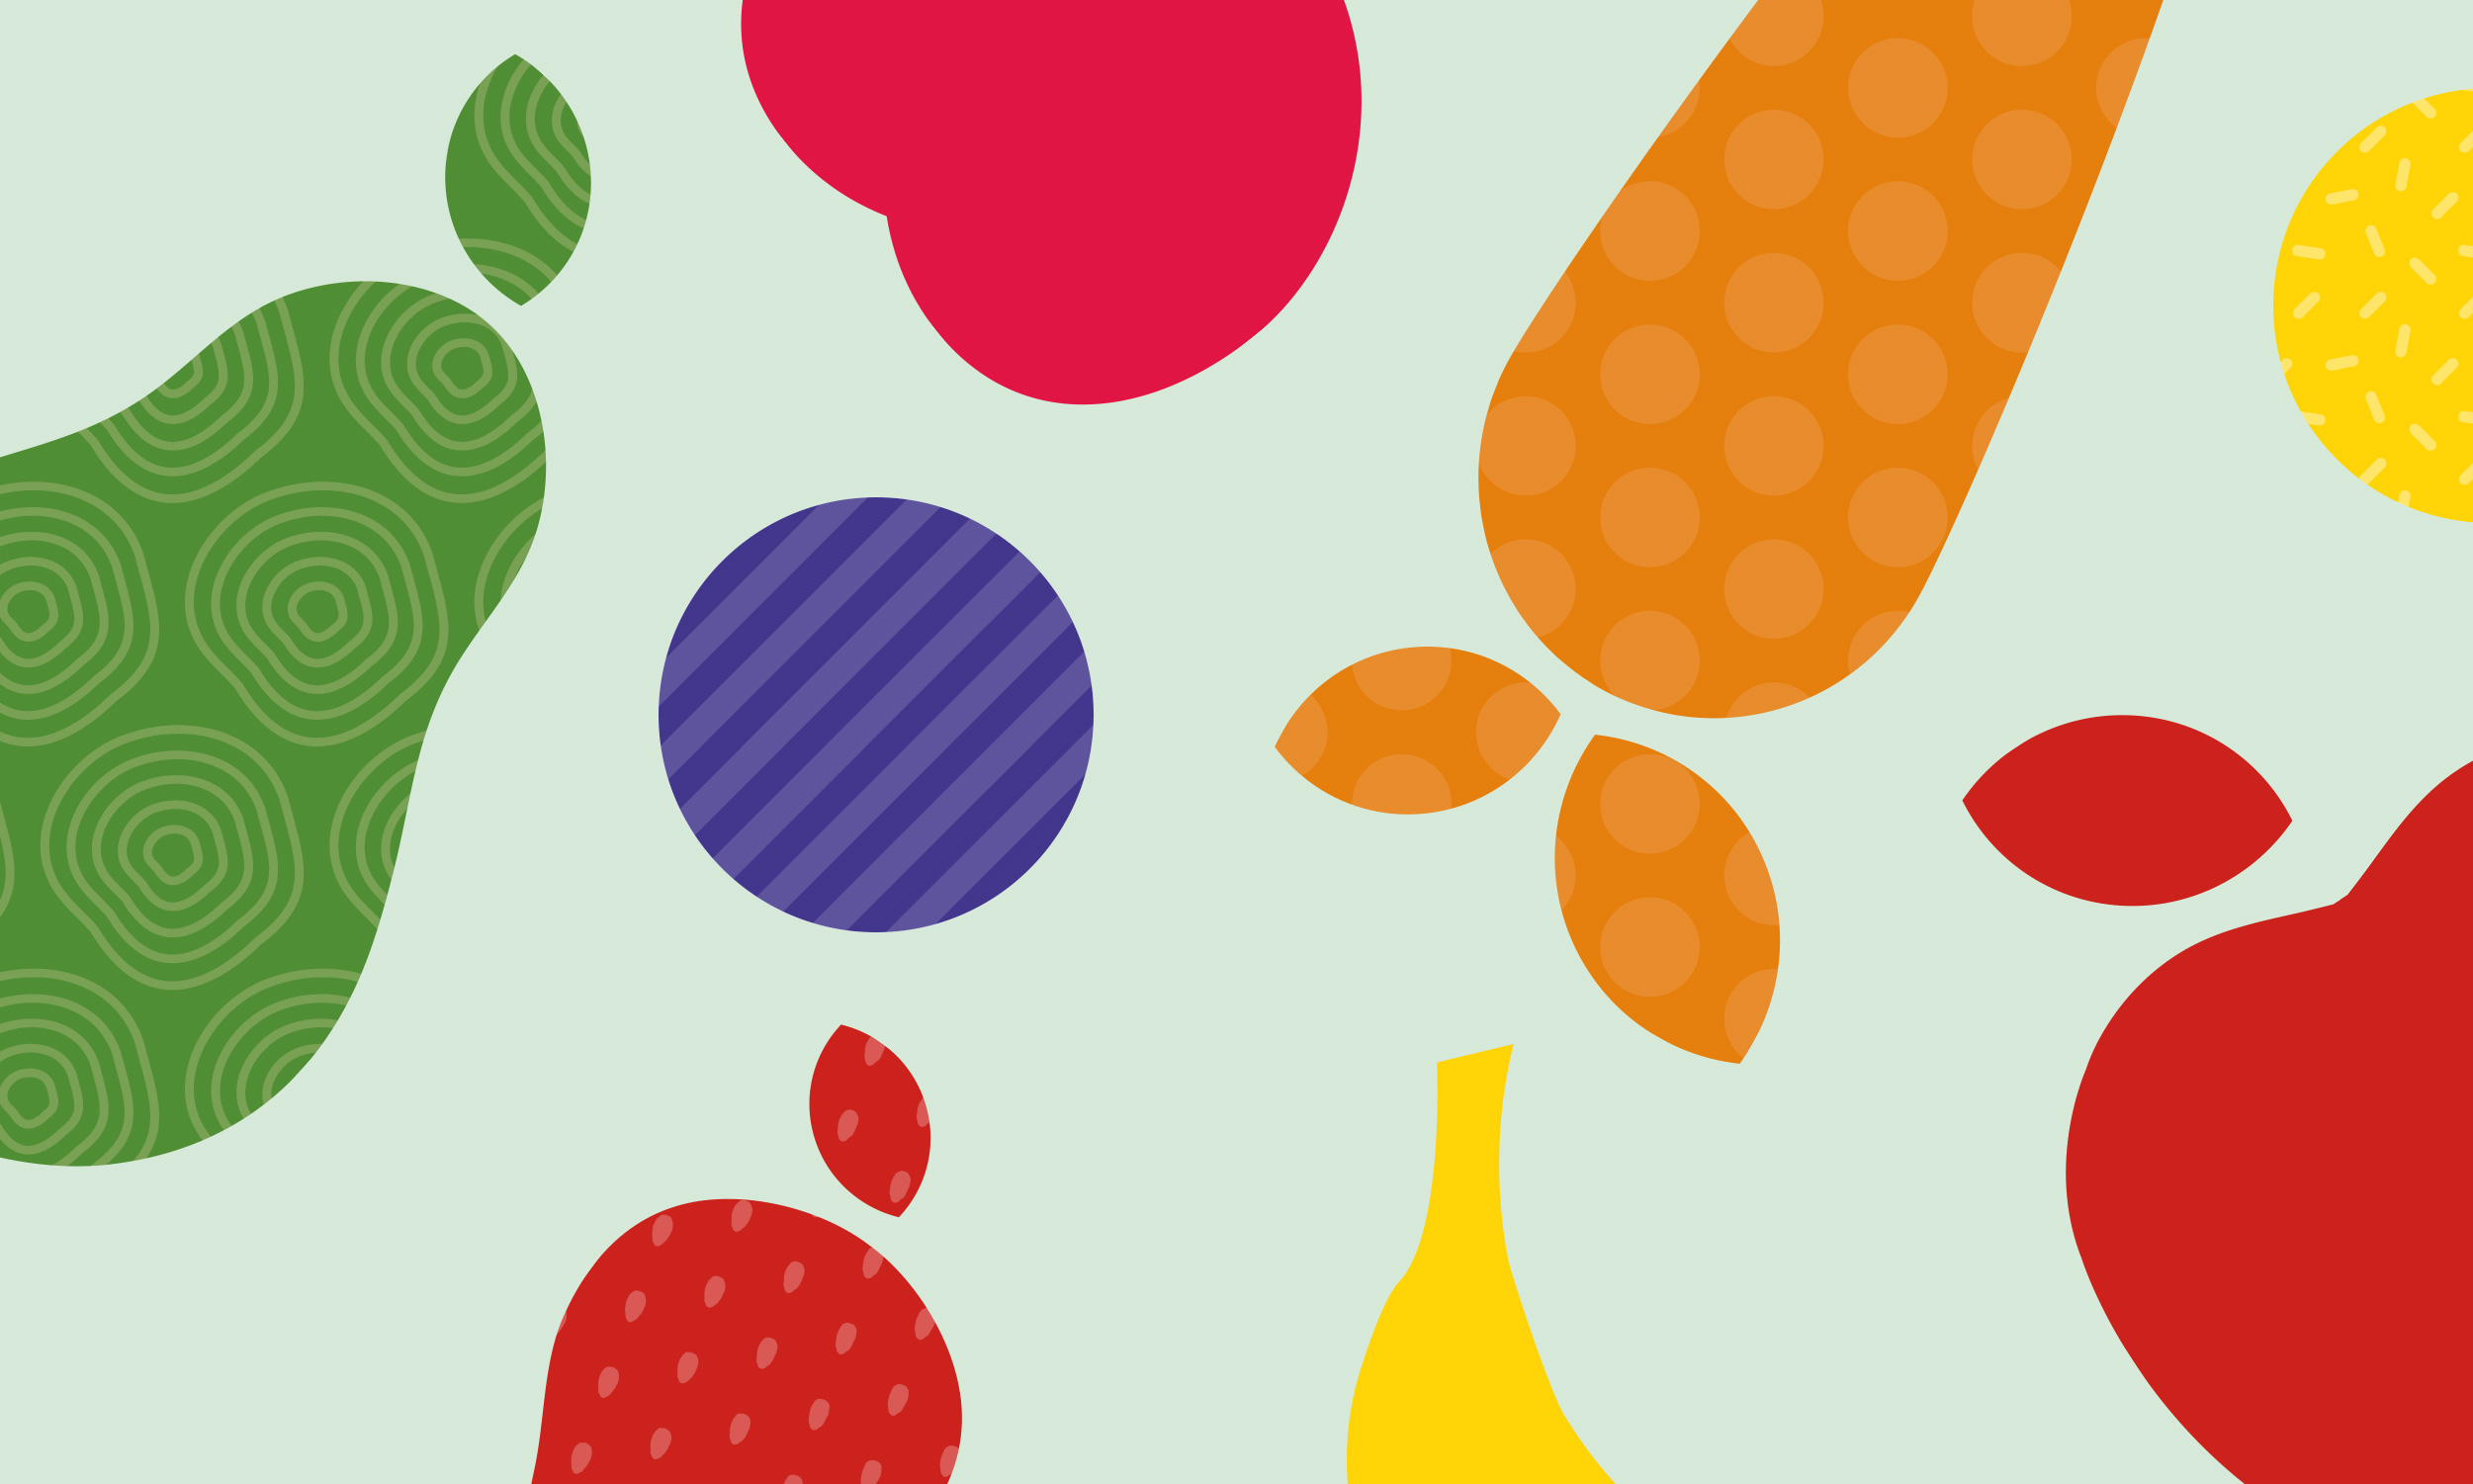 Colourful fruit pattern